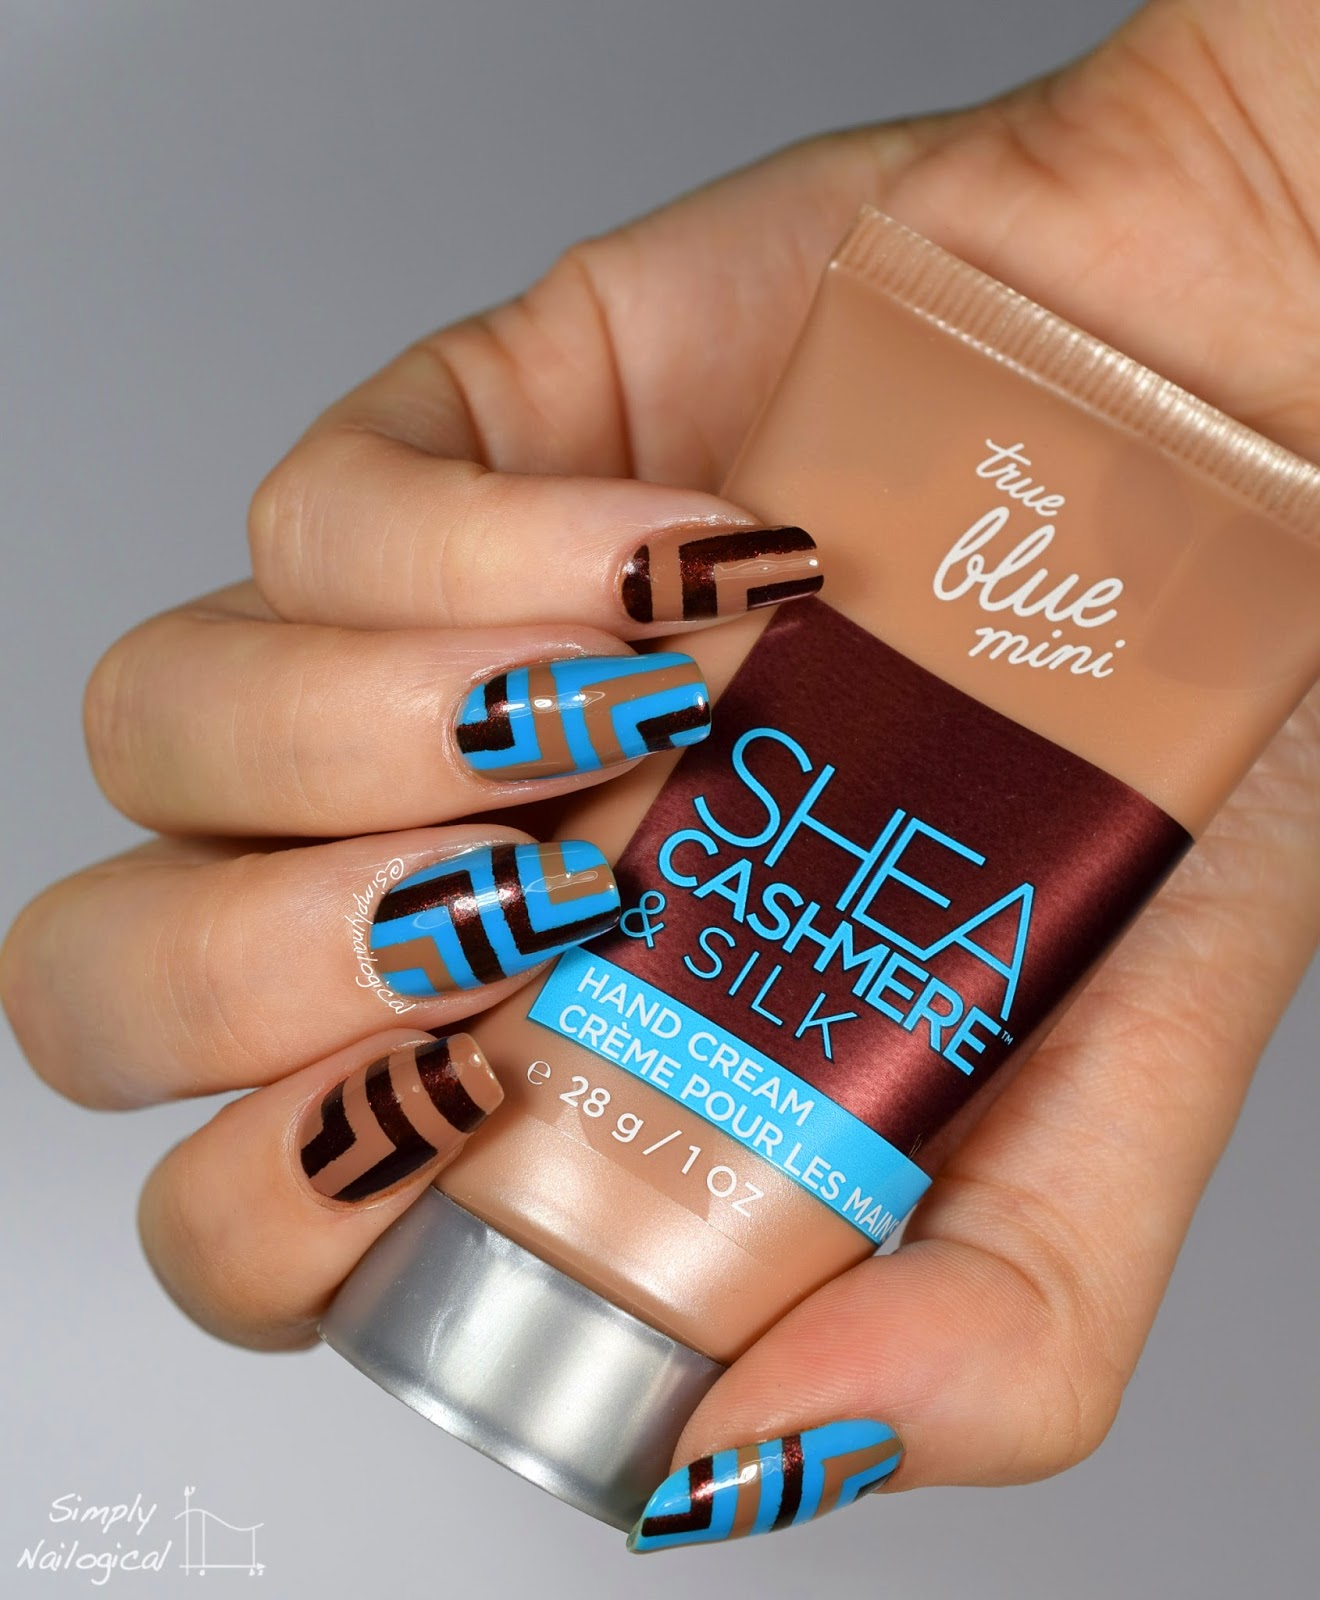 Right angle nails - Bath and Body Works